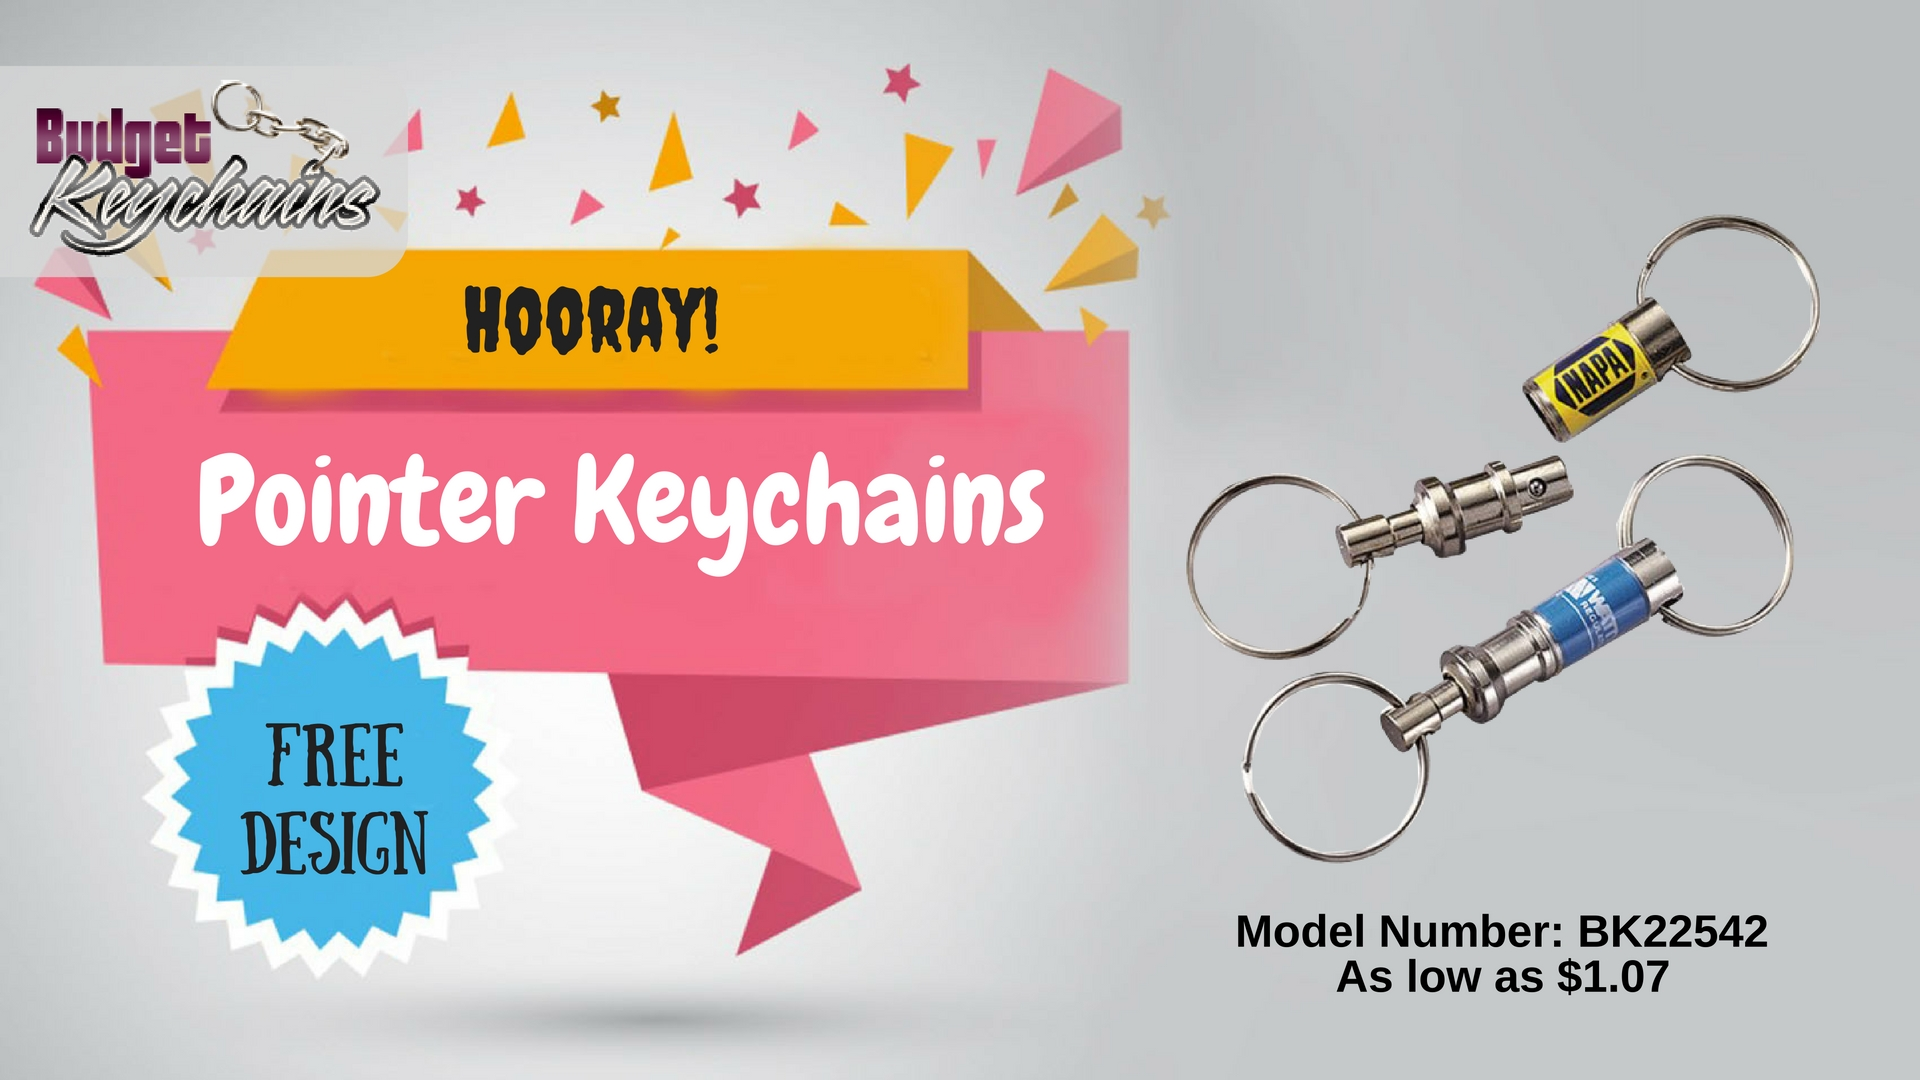 Budgetkeychains | Tips for buying personalized keychains - Part 35